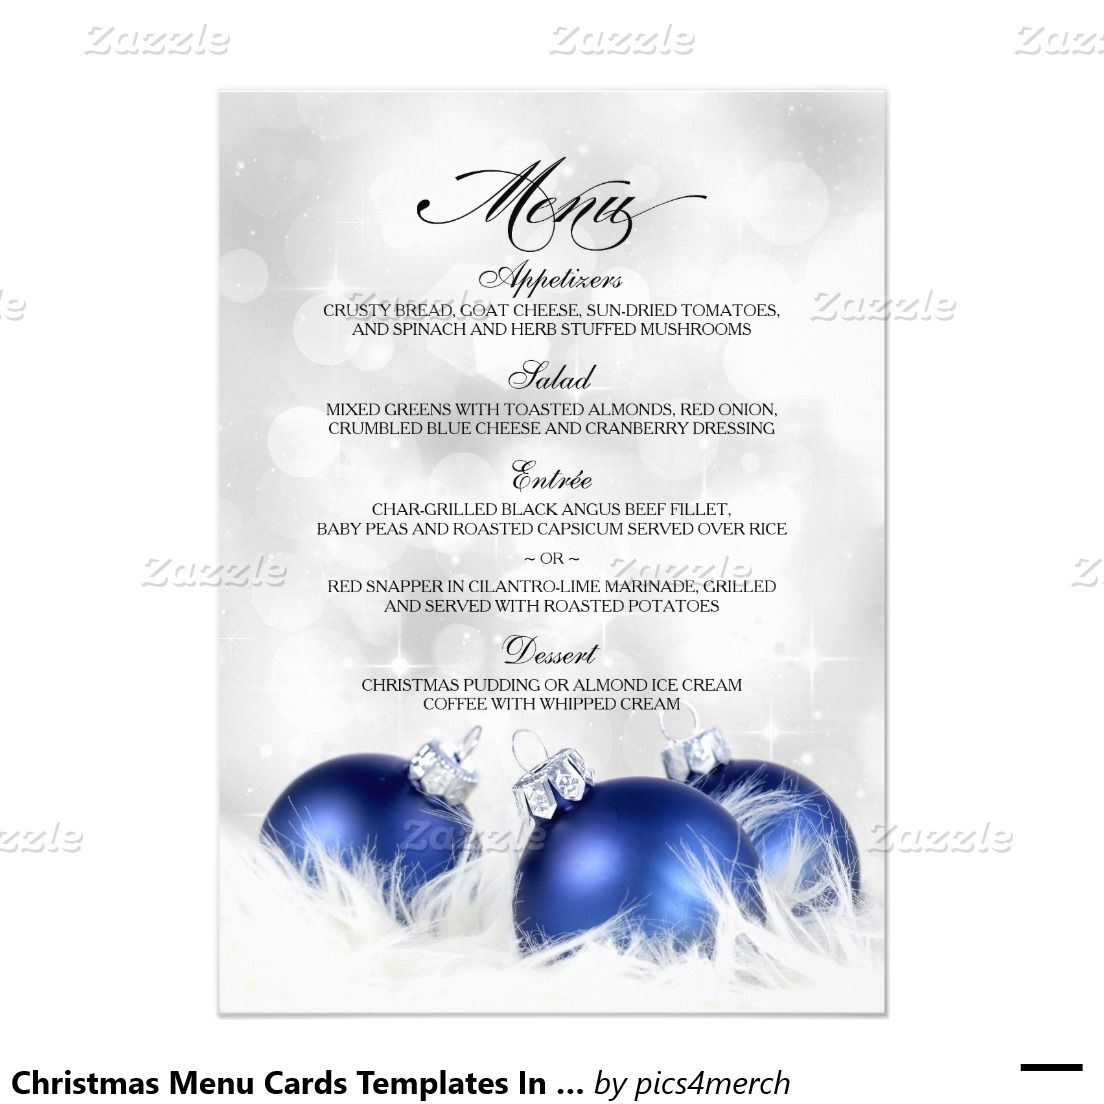 Christmas Menu Cards Templates In Blue And Silver Holiday Flyer Template Holiday Open House Invitations Dinner Party Invitations